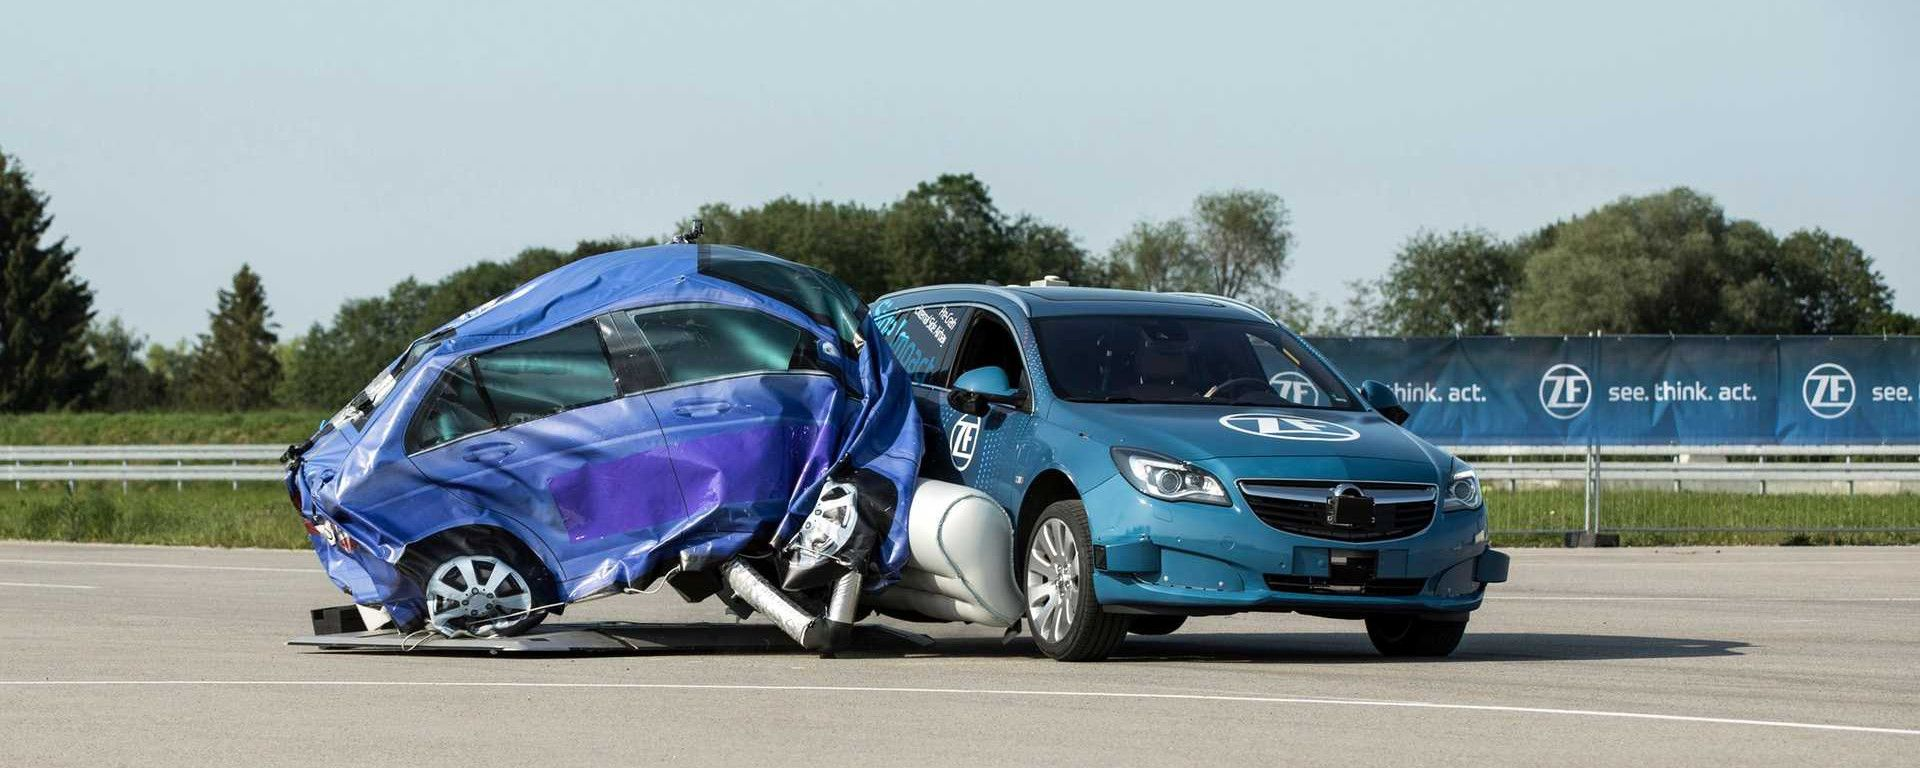 ZF airbag laterale esterno in fase di test